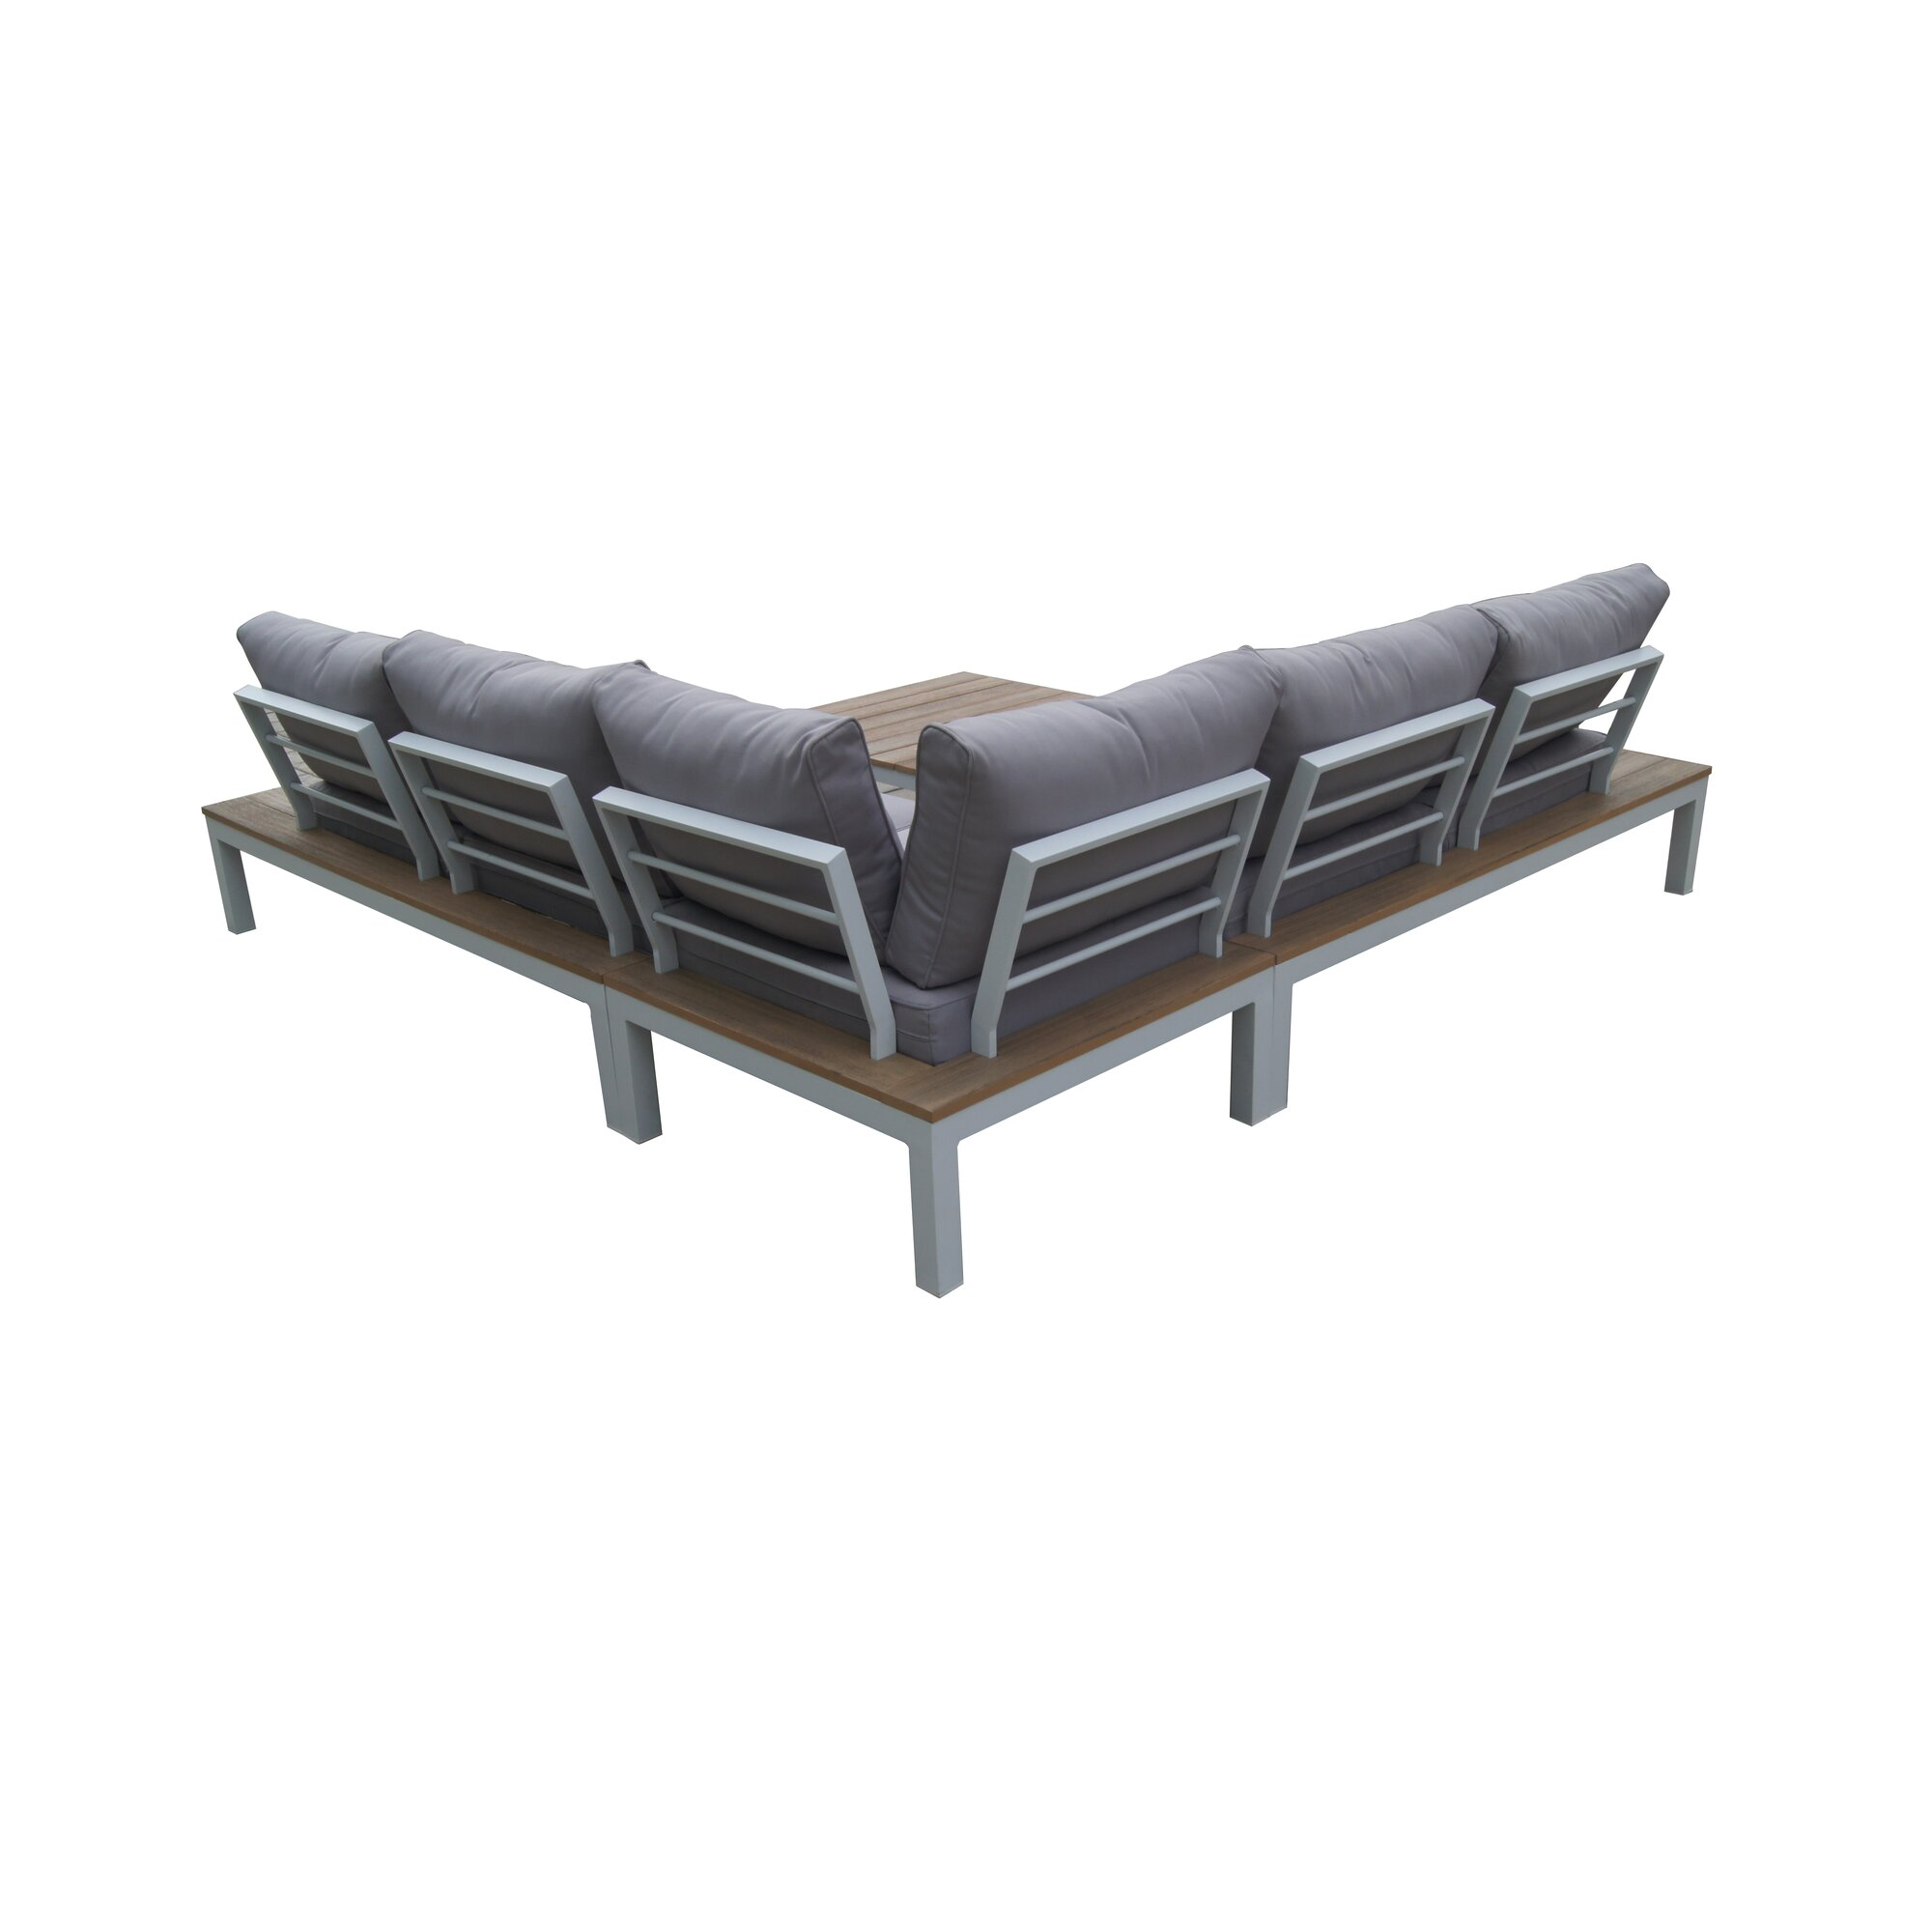 tv units celio furniture tv. Tv Units Celio Furniture 4 Piece Sectional Seating Group With Cushions U